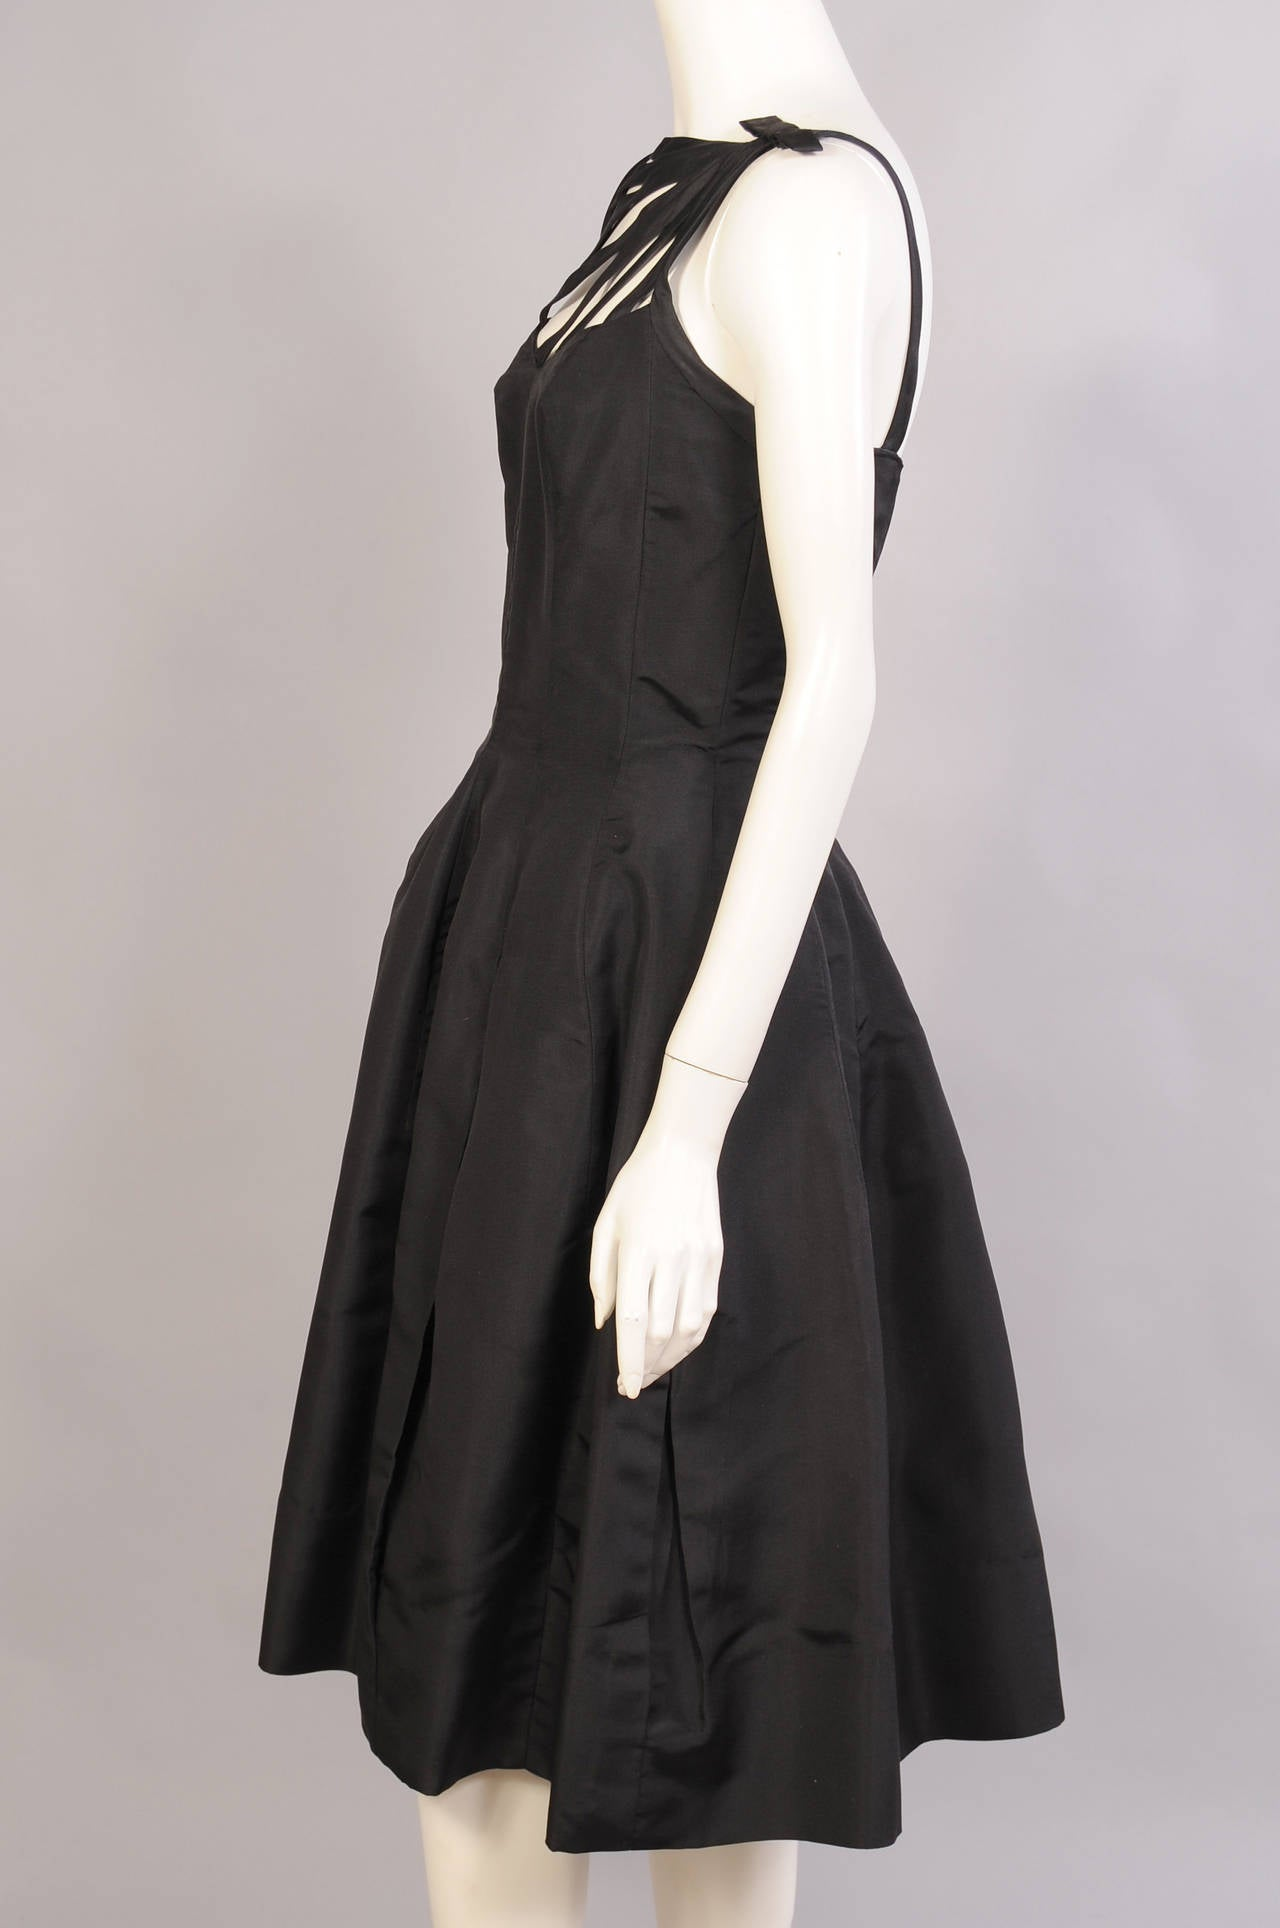 1960's Oleg Cassini Black Silk Cocktail Dress 4